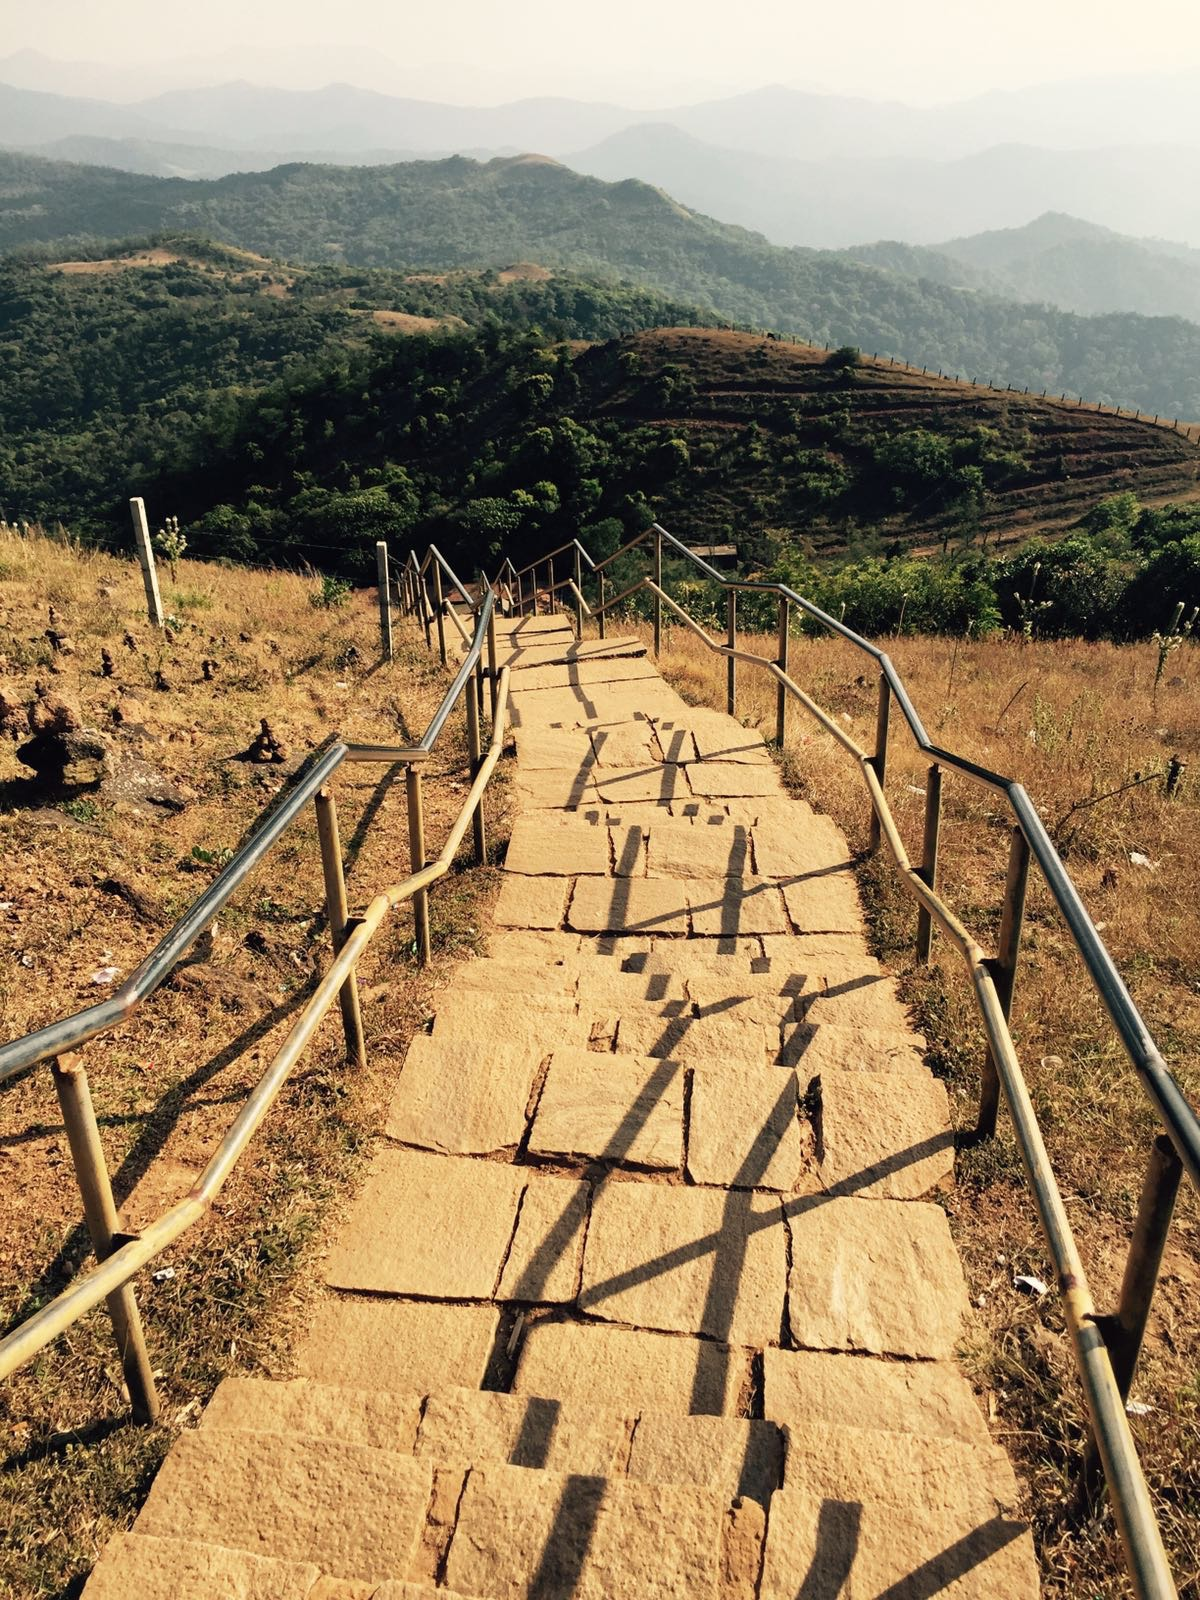 300 steps to the top. Never skip legs day.